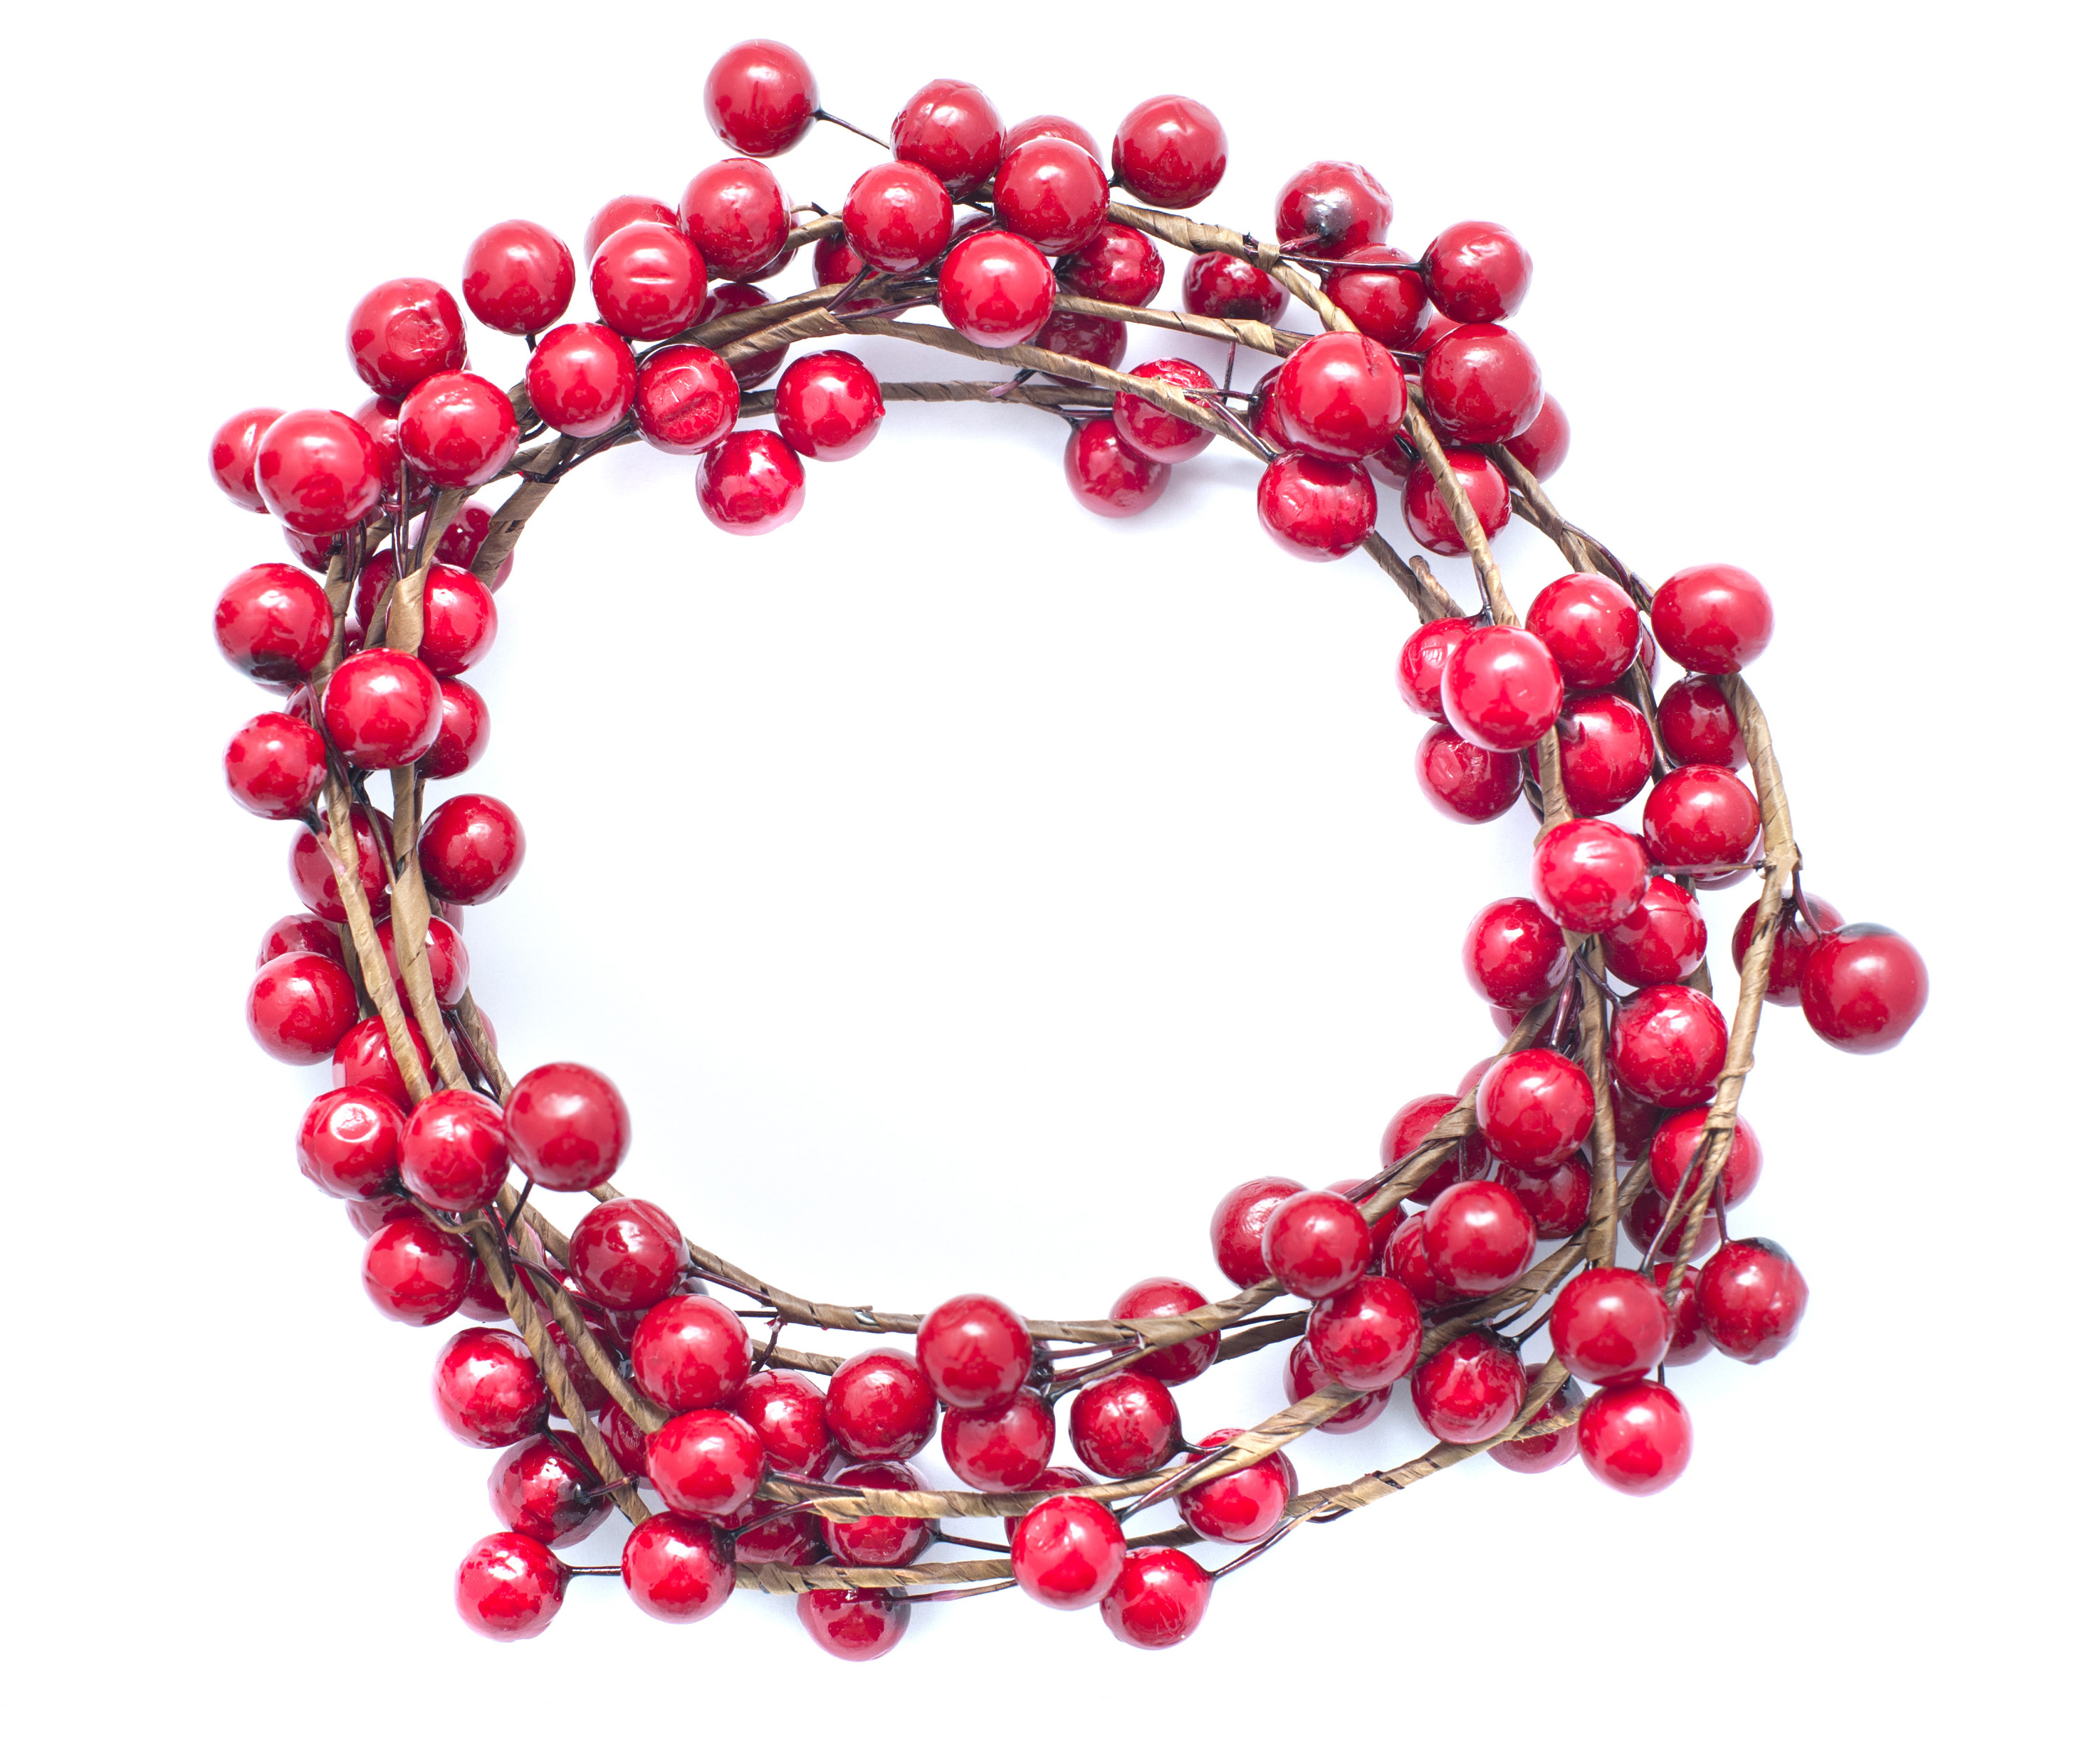 Circular wreath of colorful red Christmas berries isolated on white with central copy space for your holiday greeting